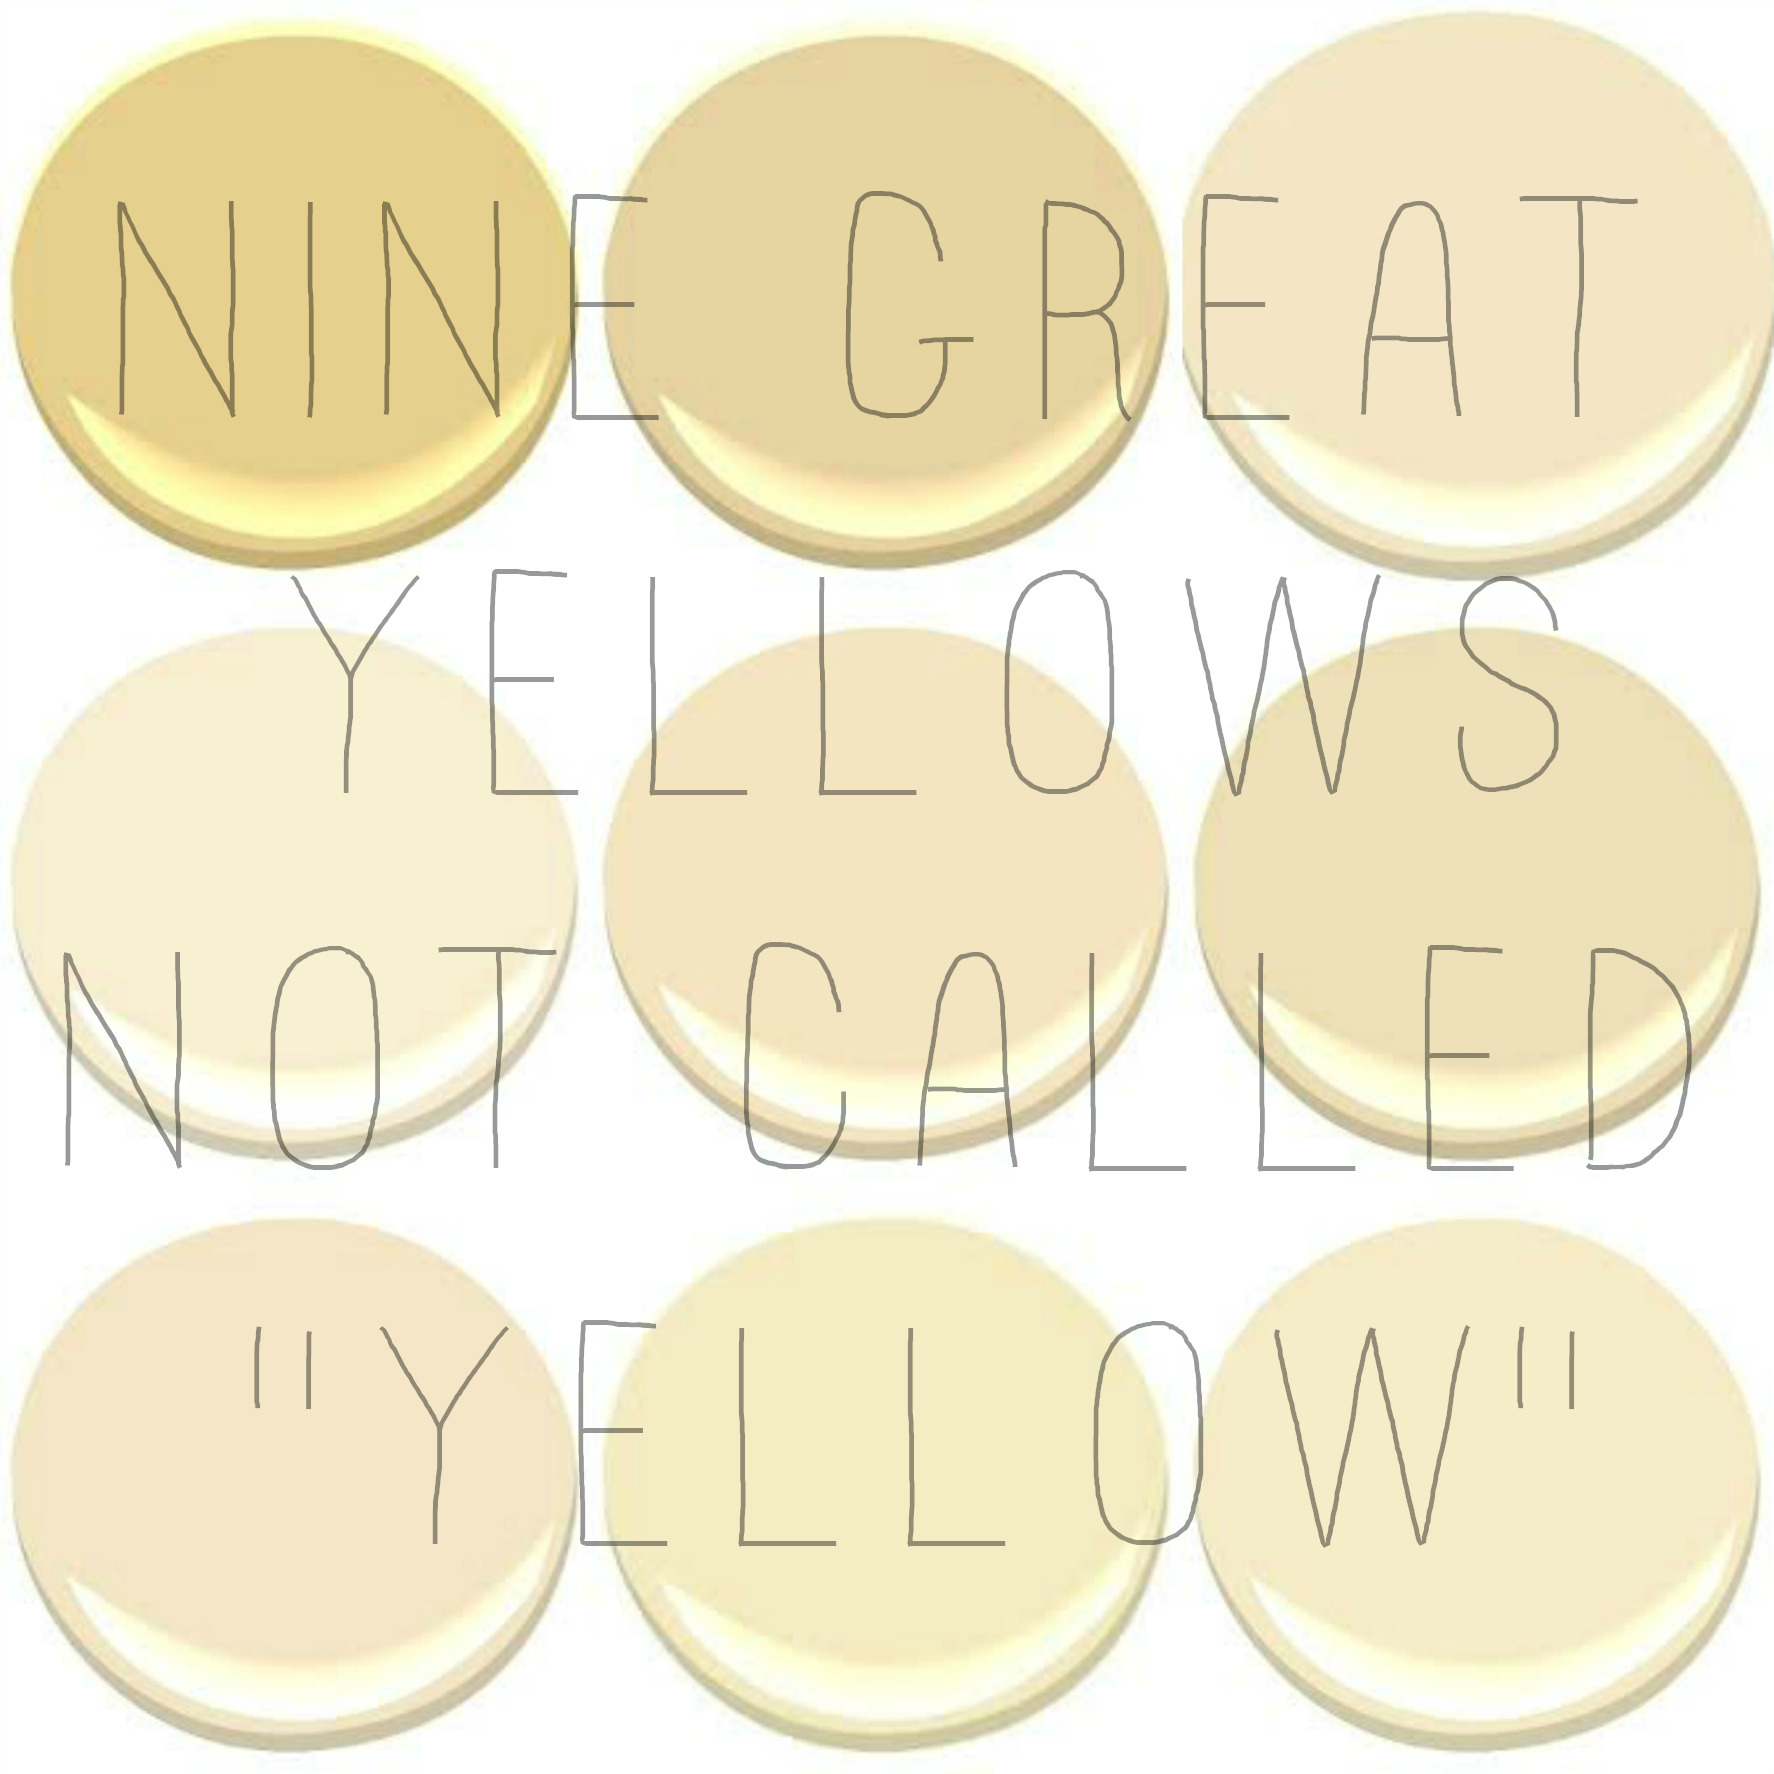 9 of the 10 most popular benjamin moore yellows concord ivory desert tan hemplewhite ivory mannequin cream montgomery white philadelphia white - Benjamin Moore Creme Brulee